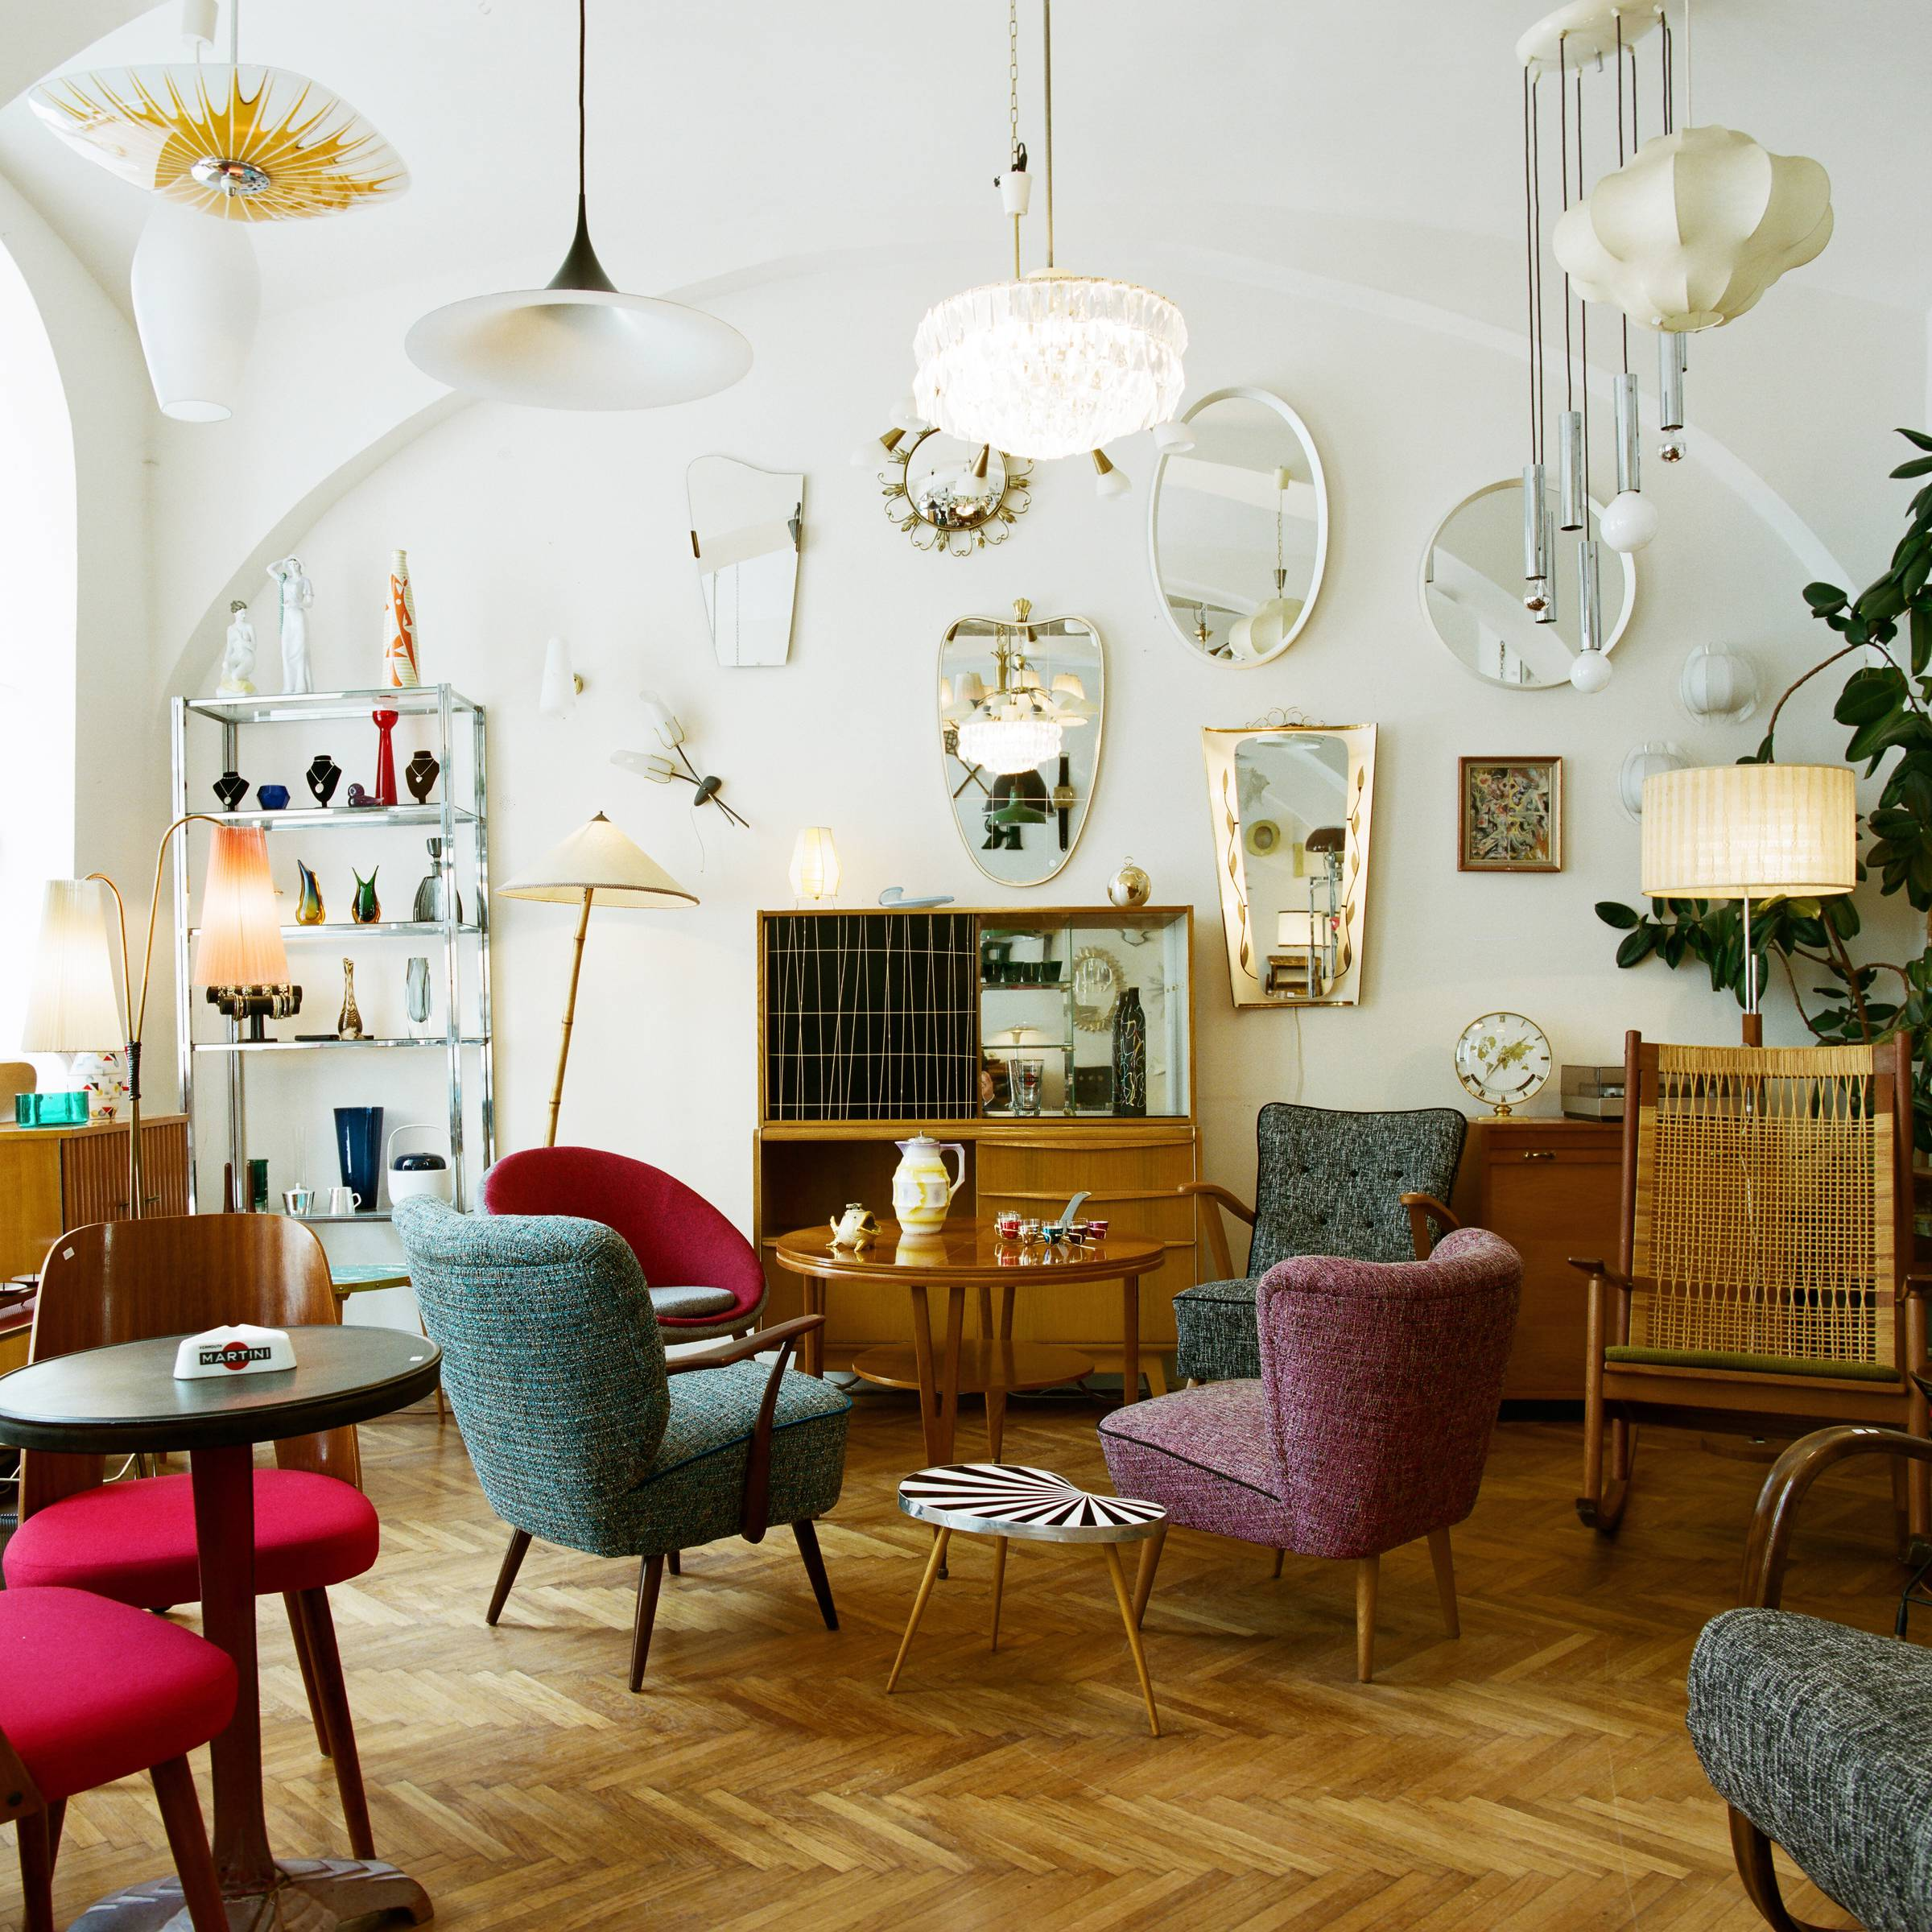 Time To Pack Your Bags And Visit The Best Lighting Stores In Vienna 10 Lighting Stores In Vienna Time To Pack Your Bags And Visit The Best Lighting Stores In Vienna Time To Pack Your Bags And Visit The Best Lighting Stores In Vienna 11